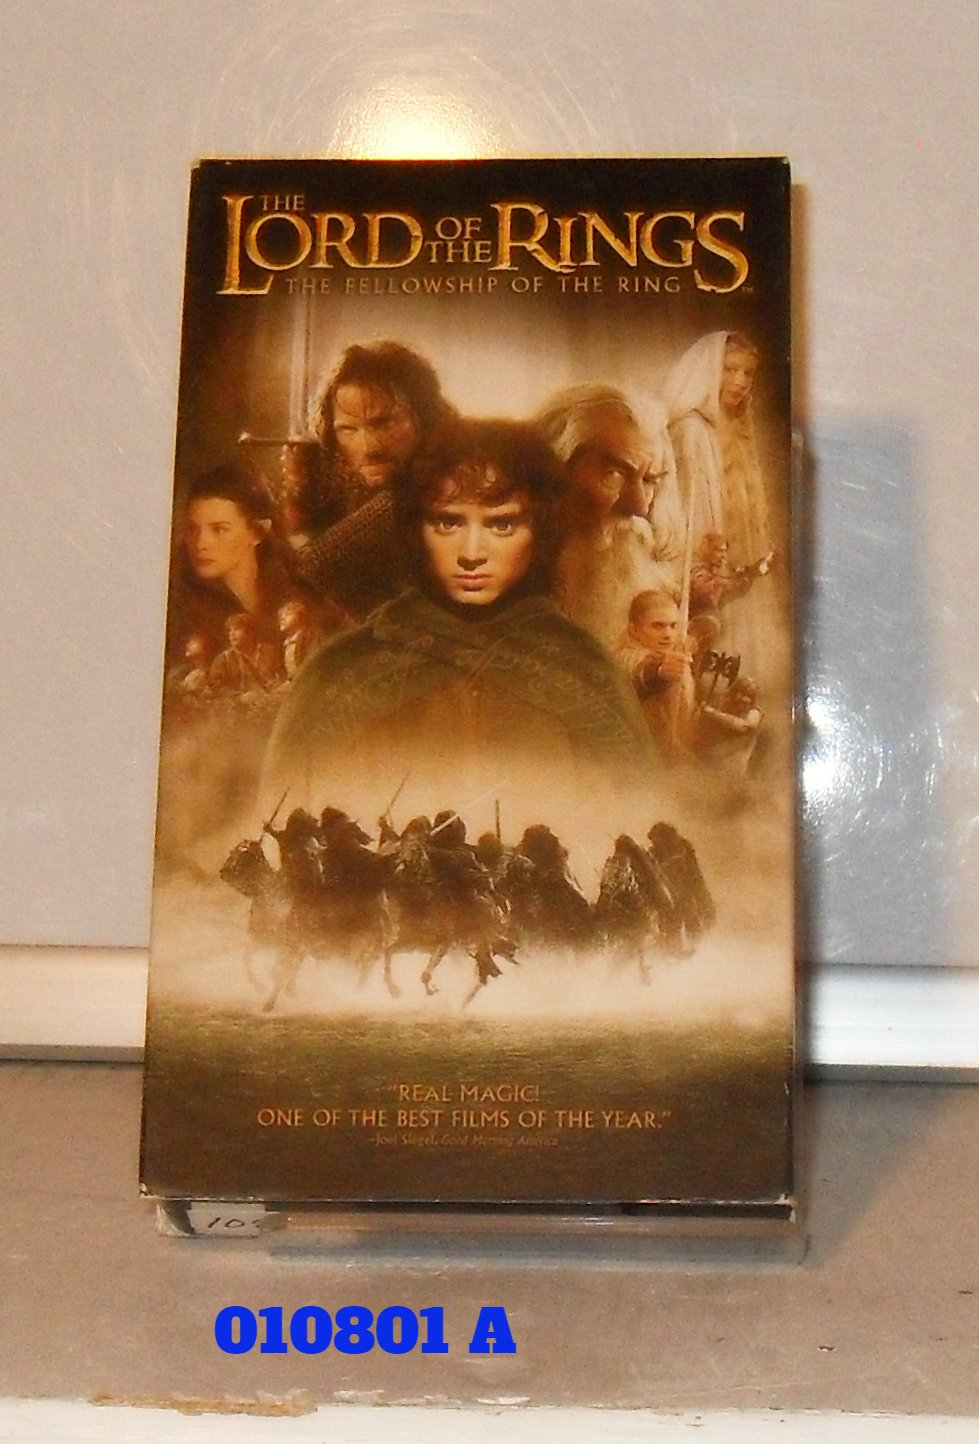 VHS - LORD OF THE RINGS  (01)  FELLOWSHIP OF THE RING, THE